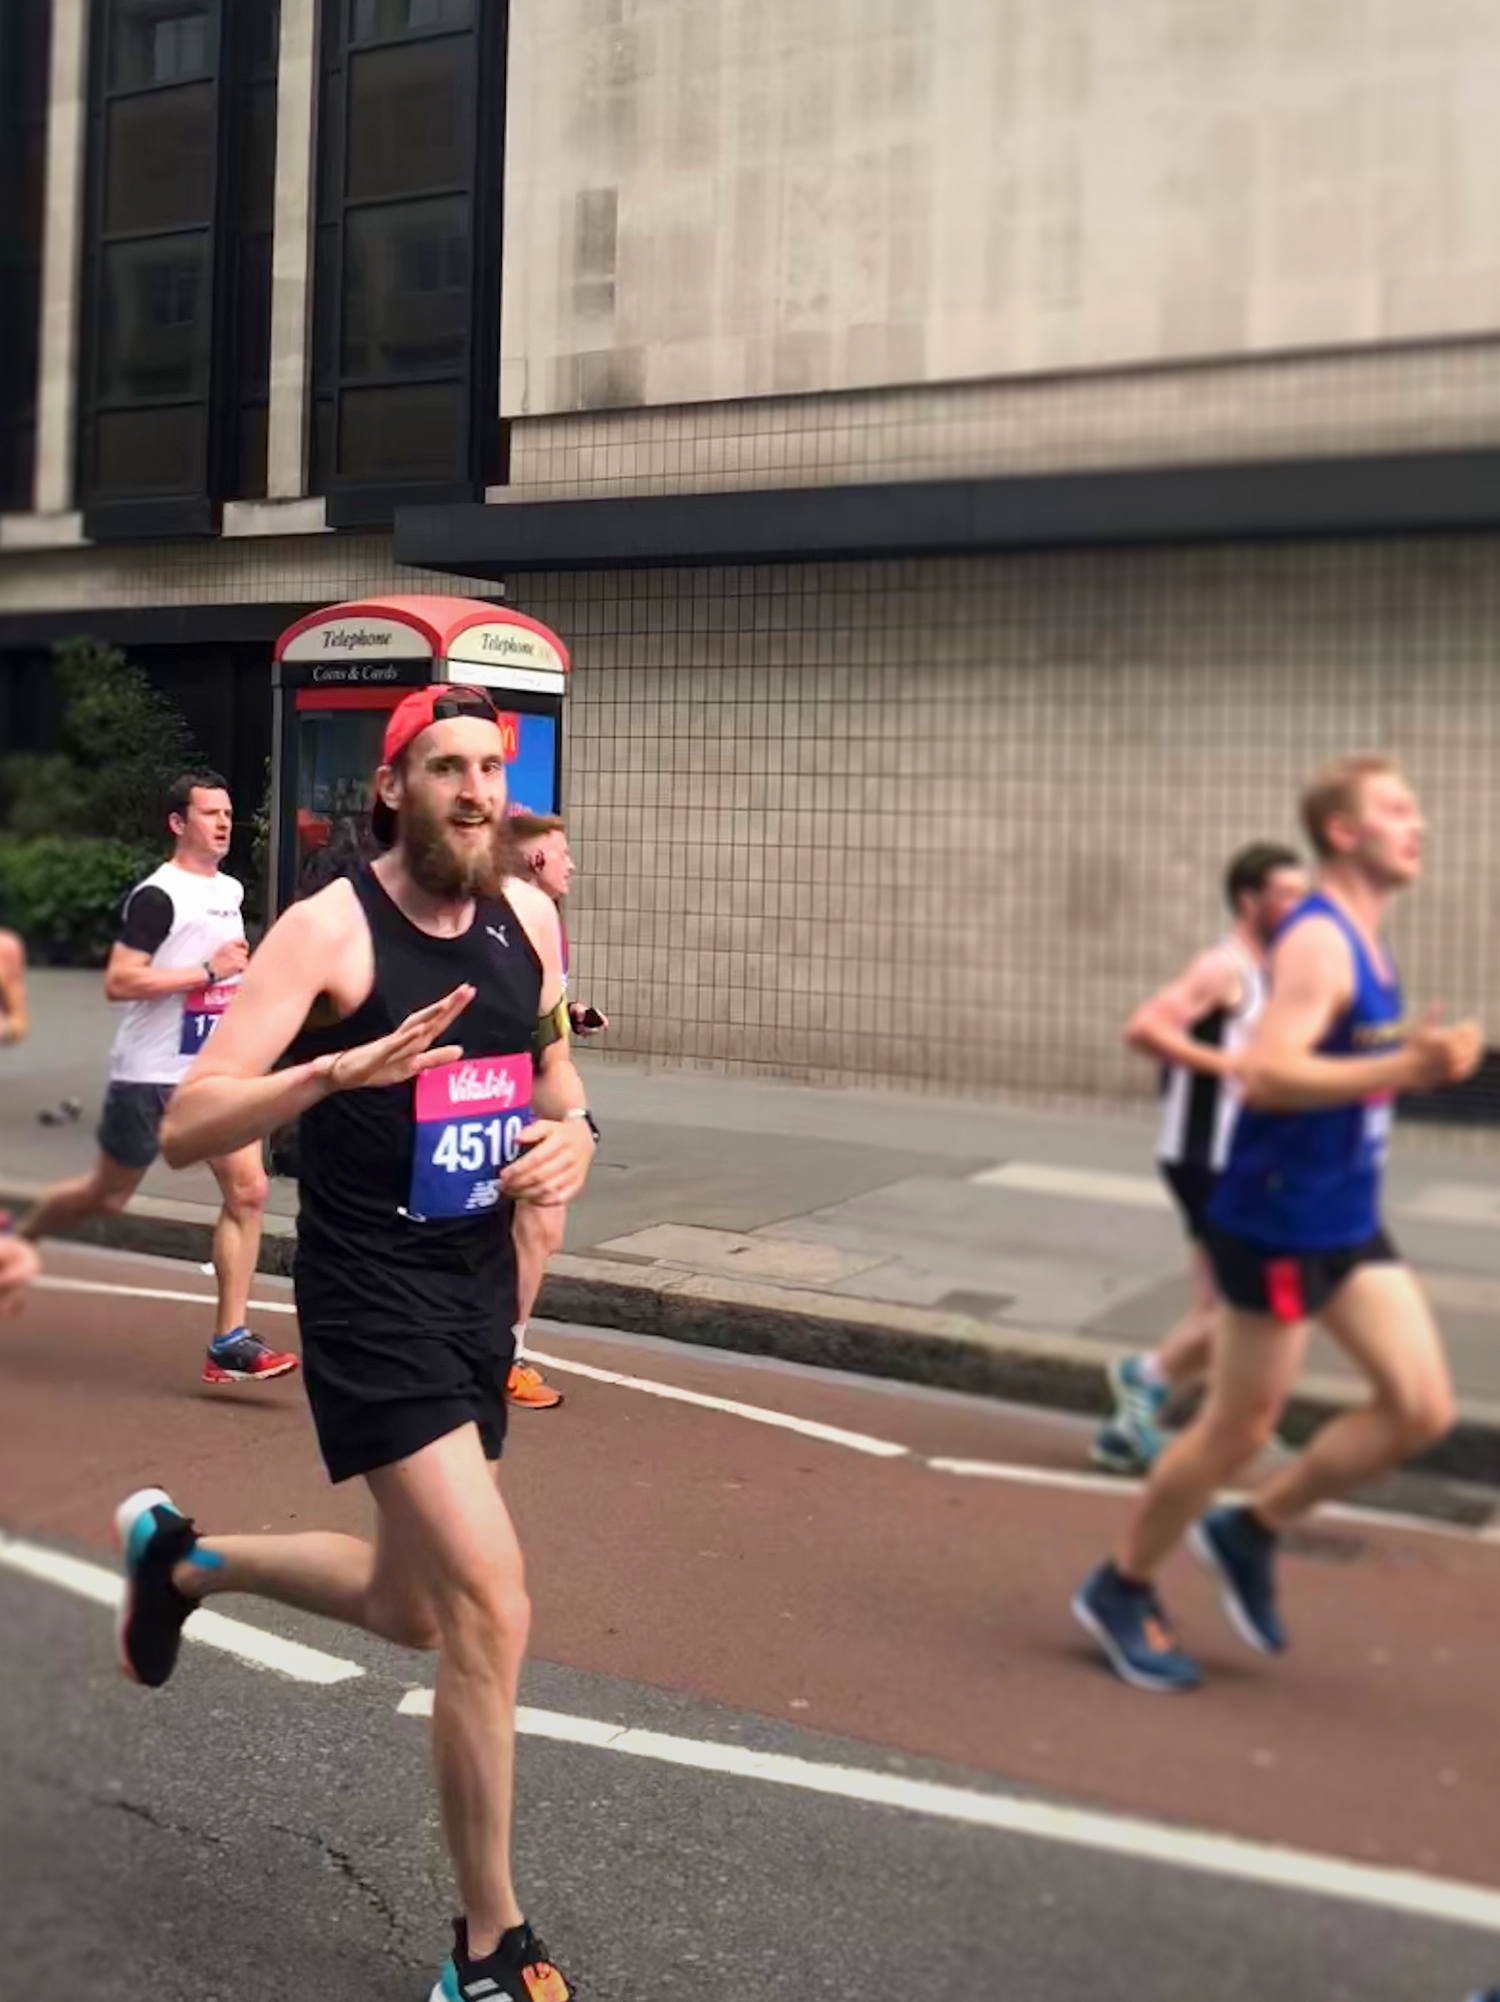 Vitality London 10000 - Mid Race Incline Assesment